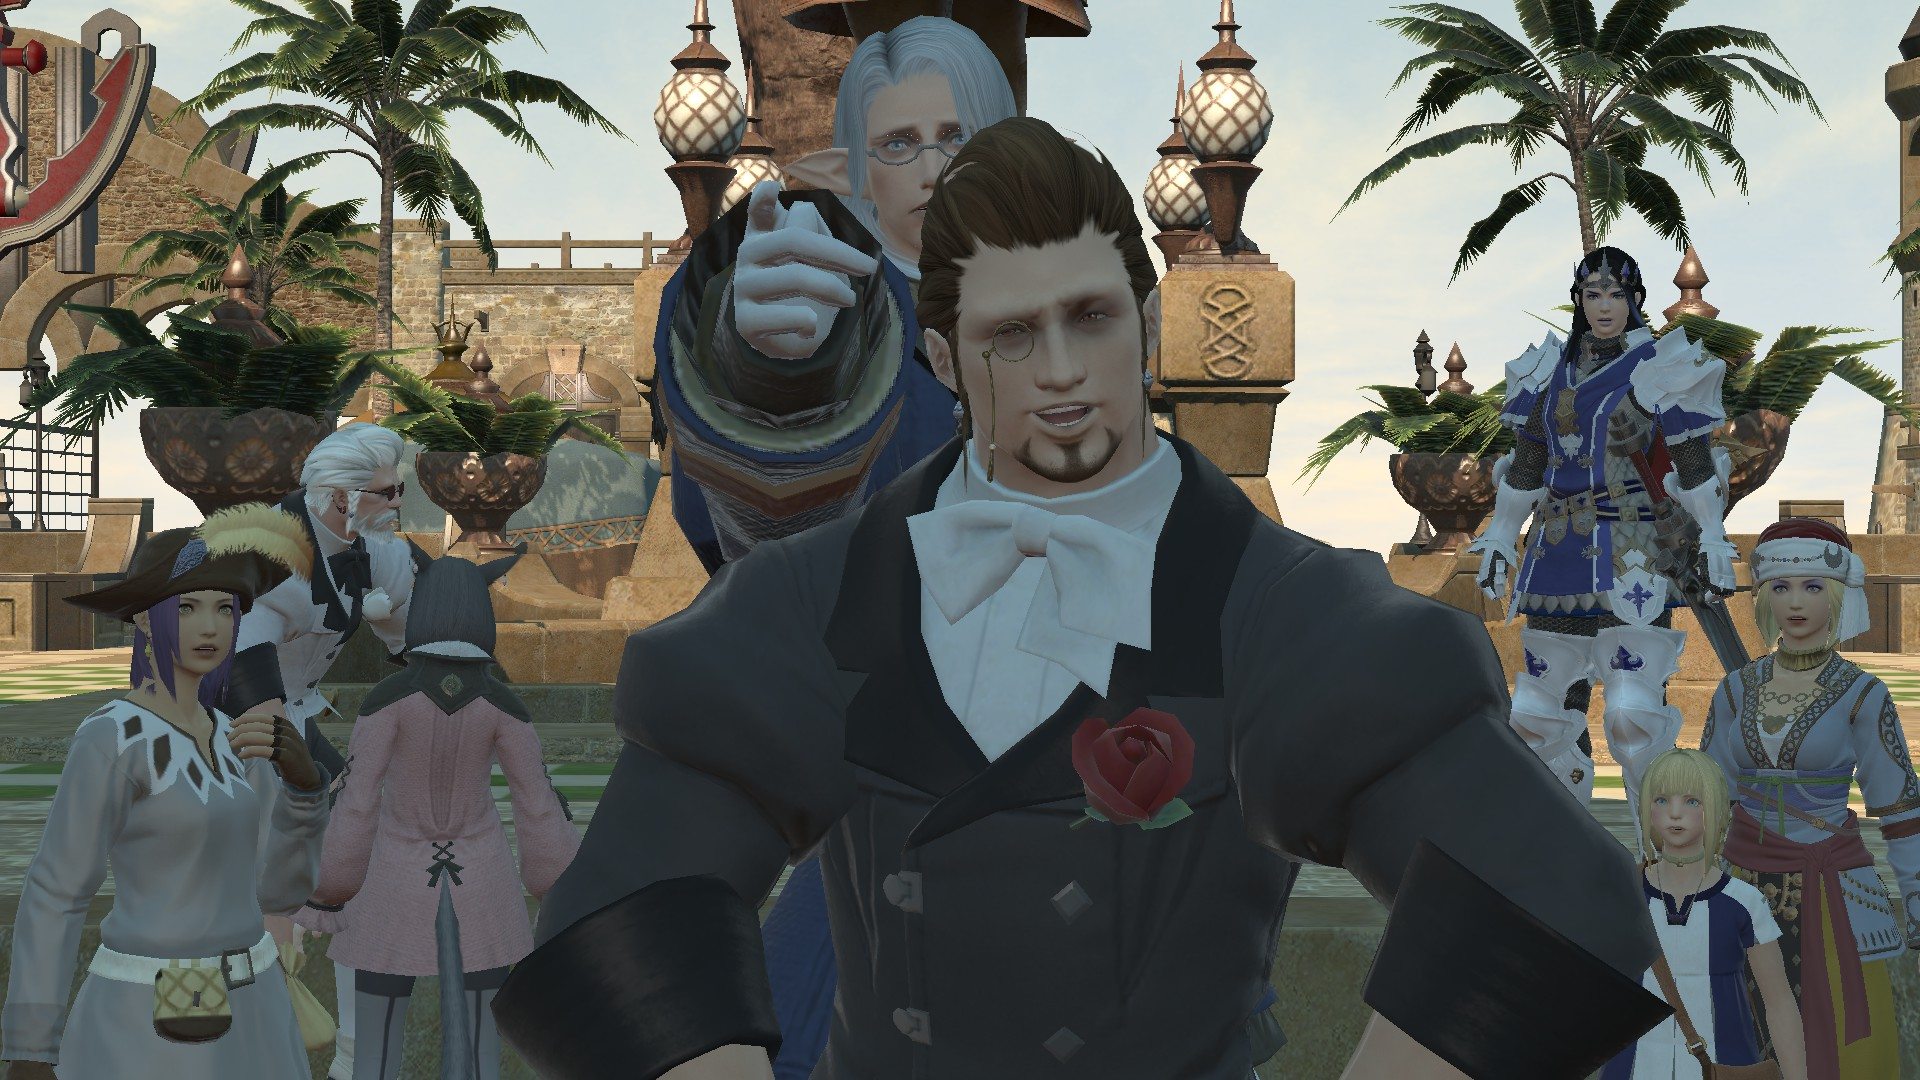 10 Things I Learned from Playing Final Fantasy XIV - The Koalition